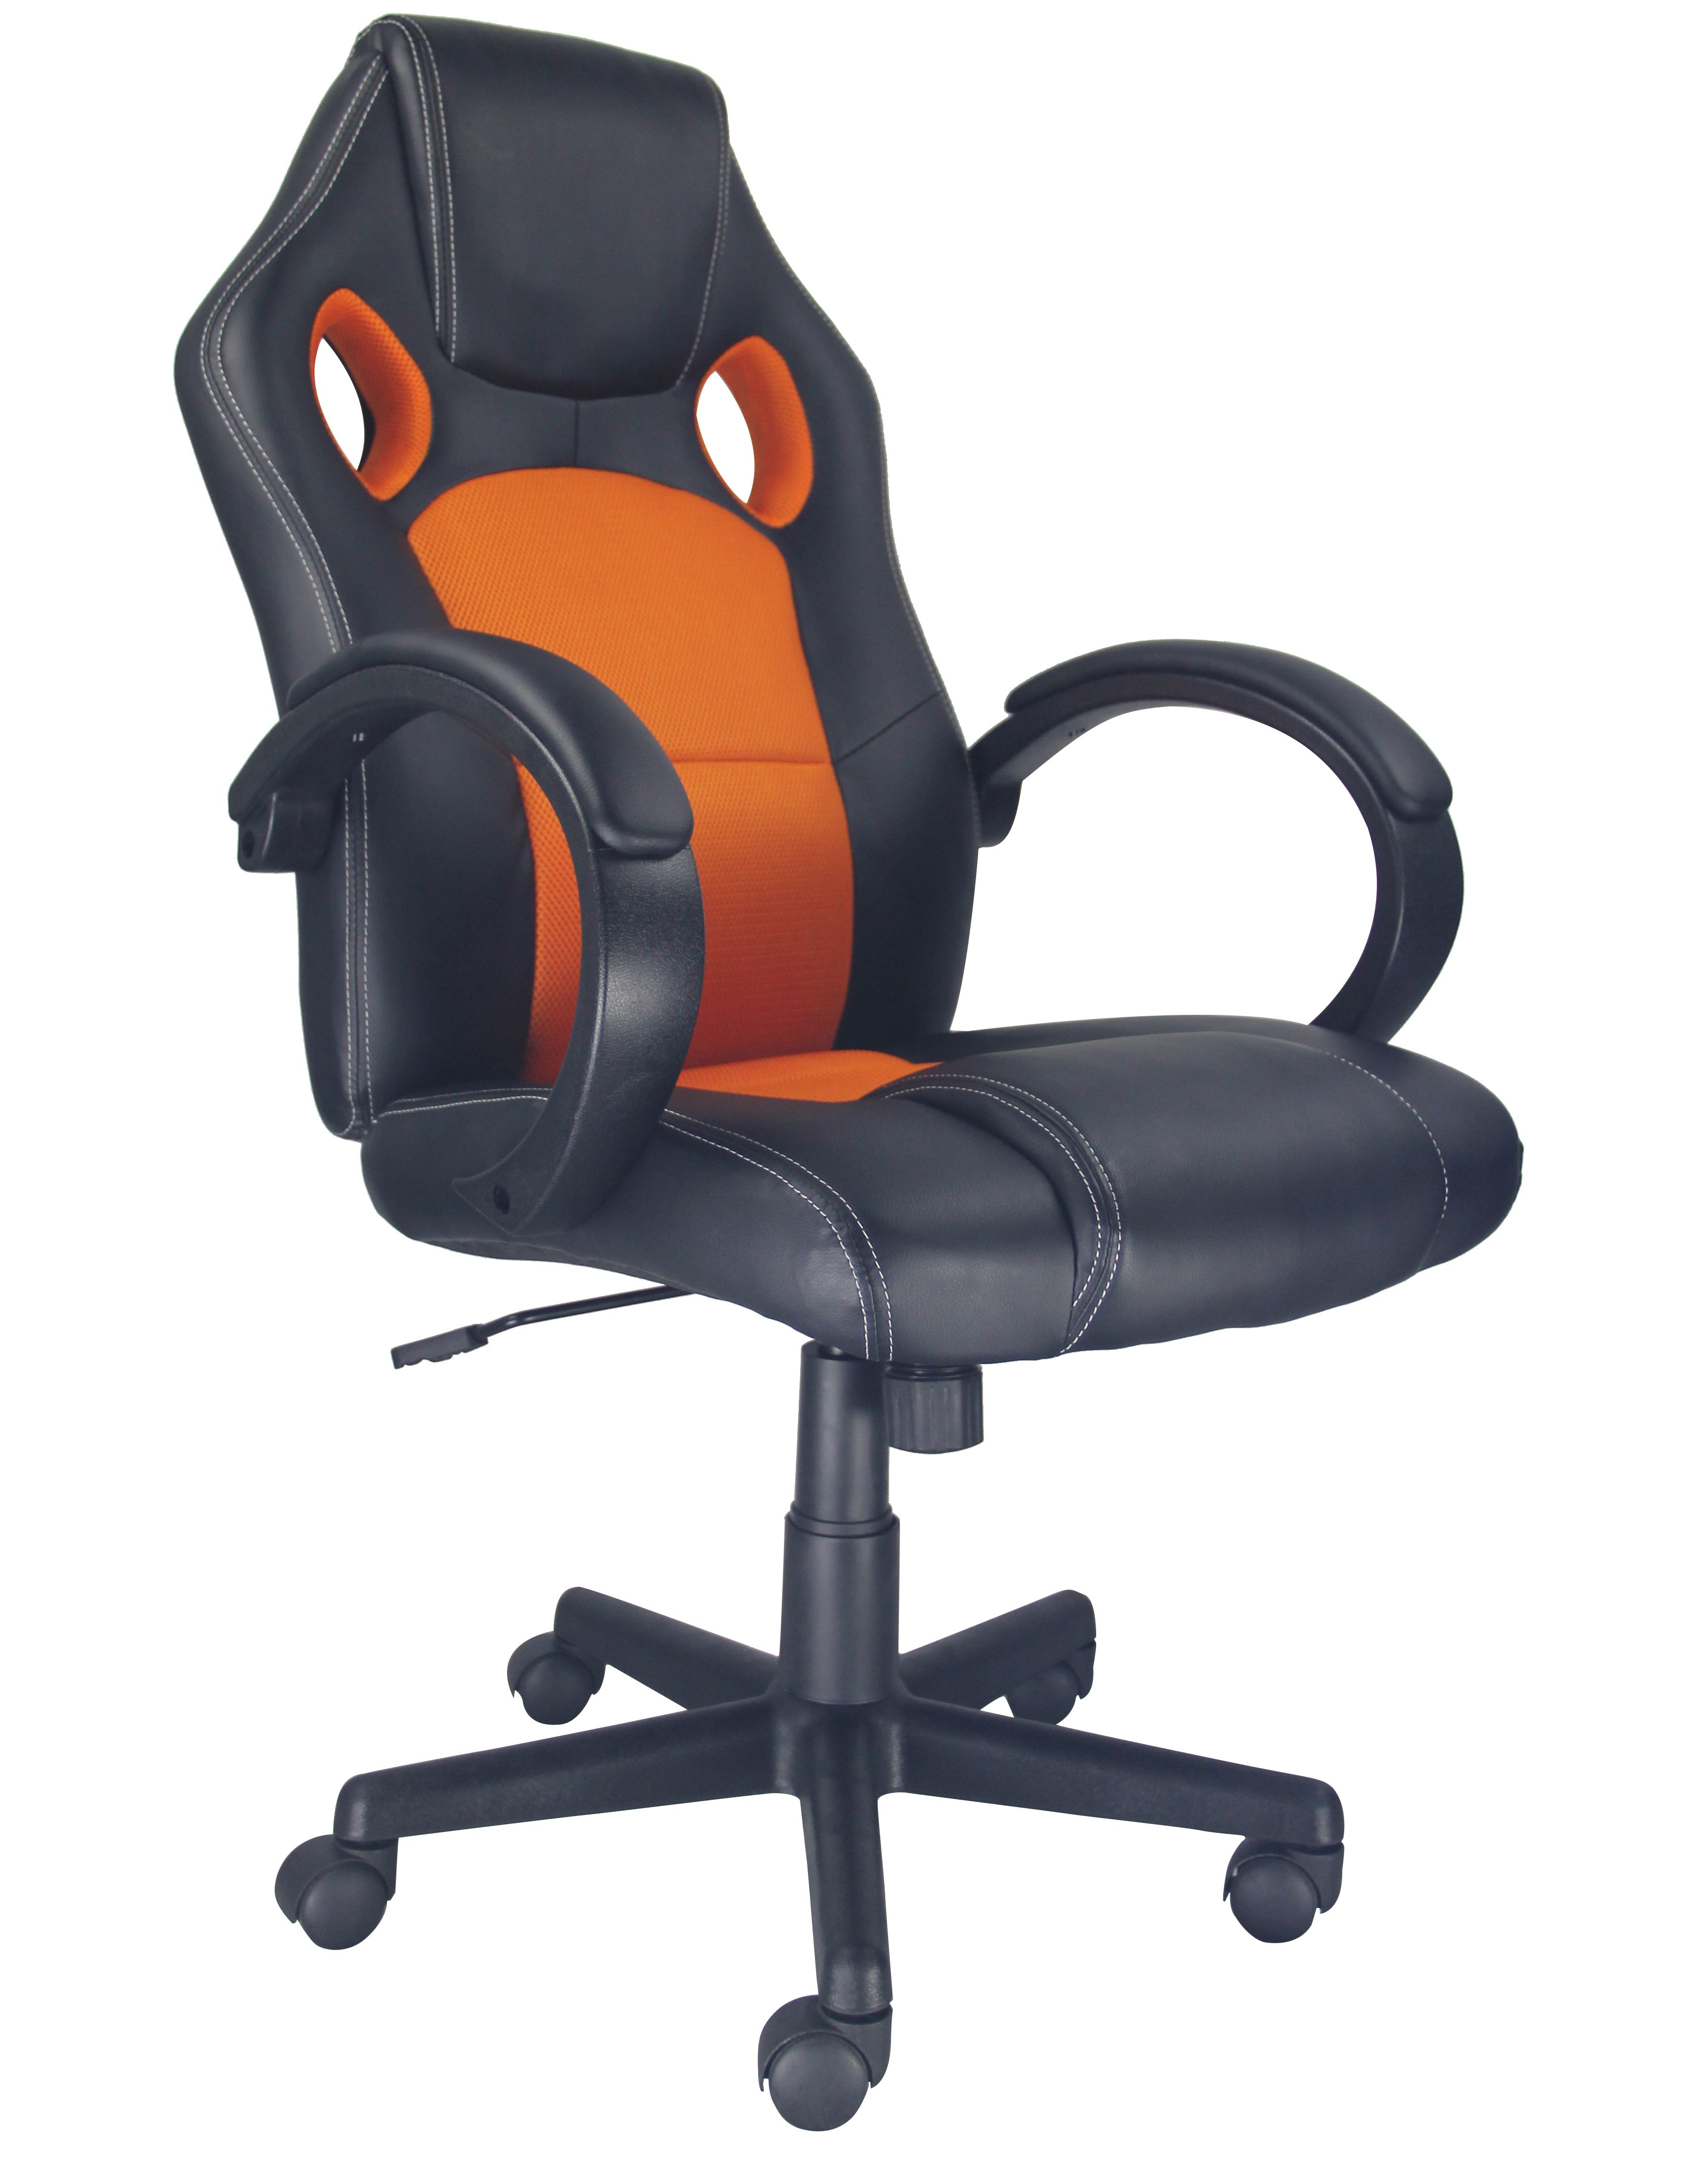 Racing Seat Office Chair Modern Office Furniture Executive Racing Bucket Seat Cheap Typist